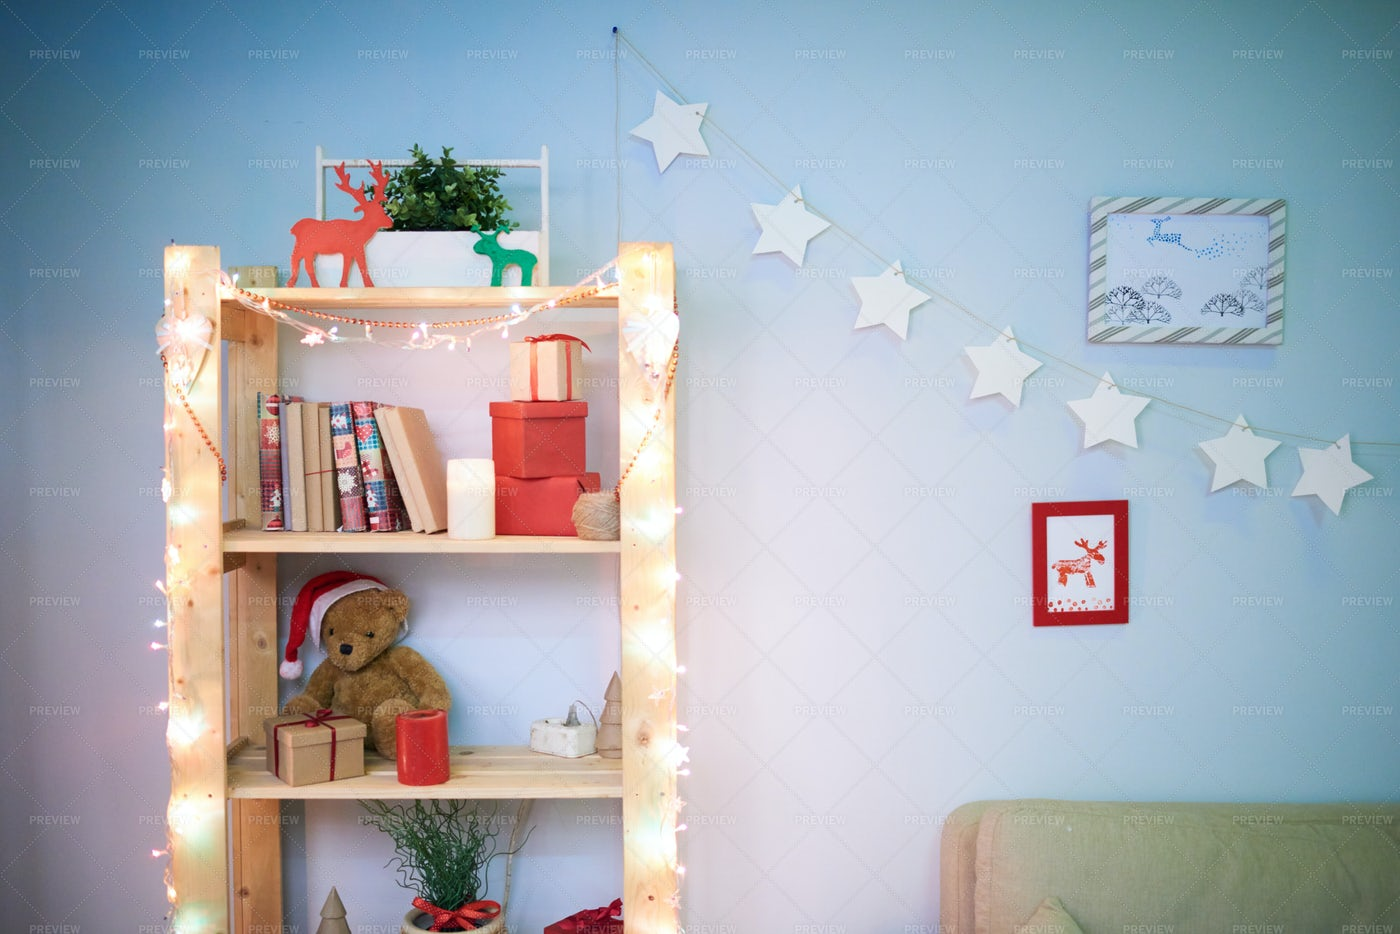 Atmosphere Of Approaching Christmas: Stock Photos